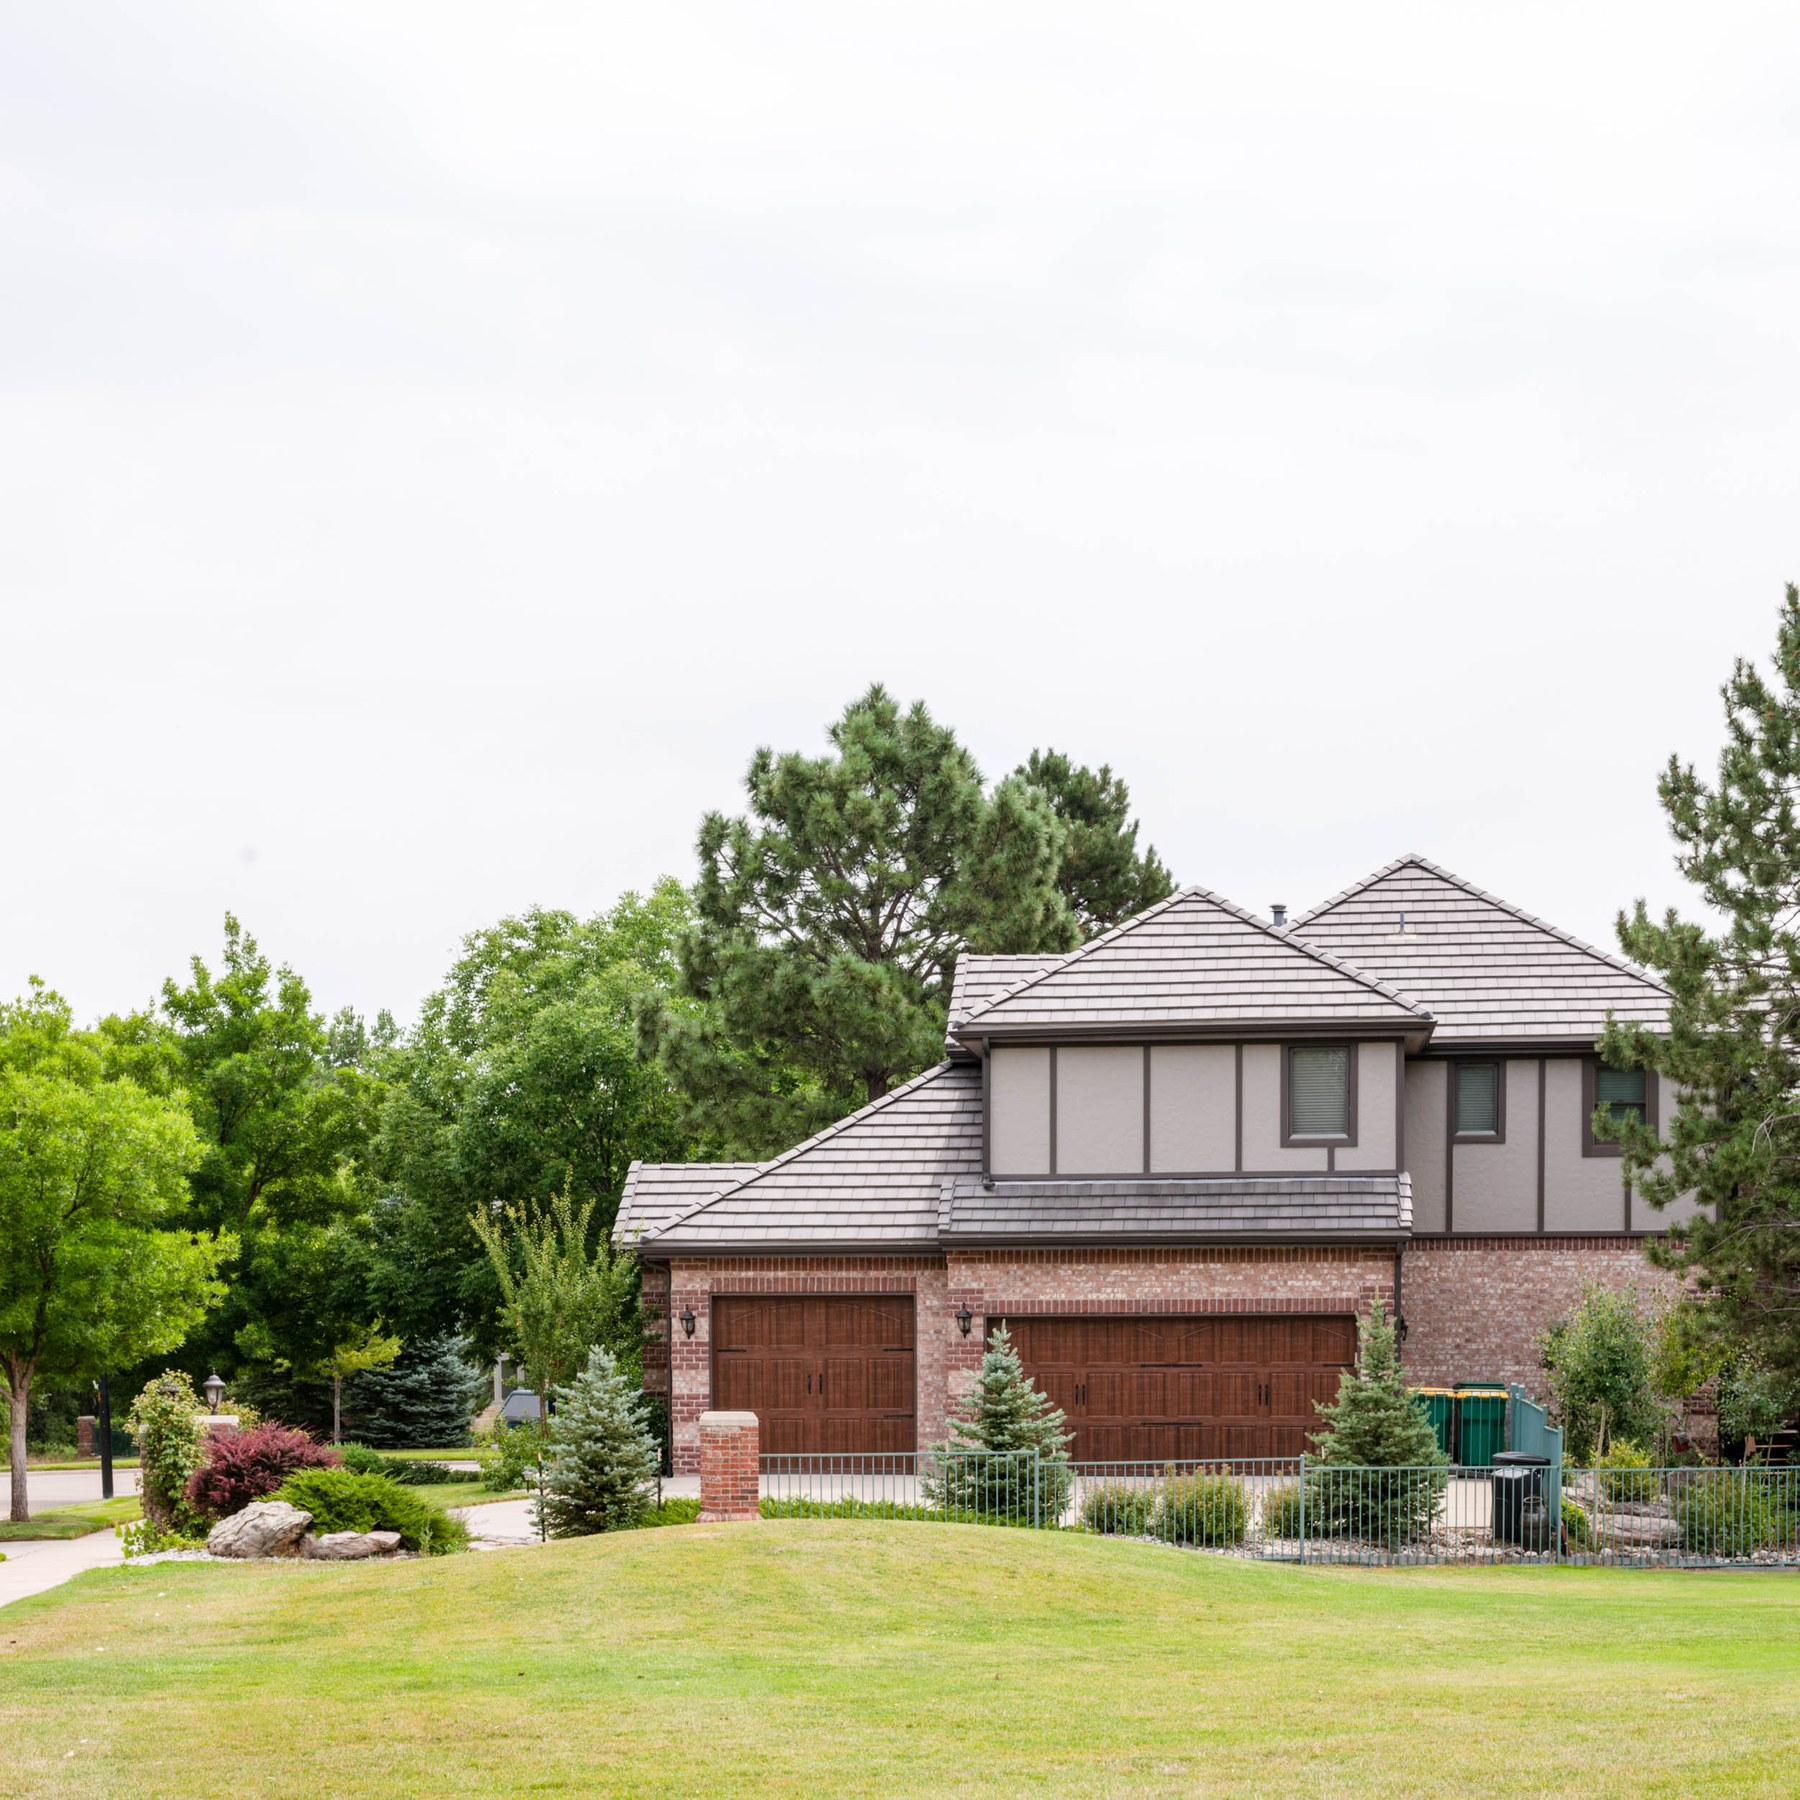 West Woods Ranch, Arvada CO - Neighborhood Guide